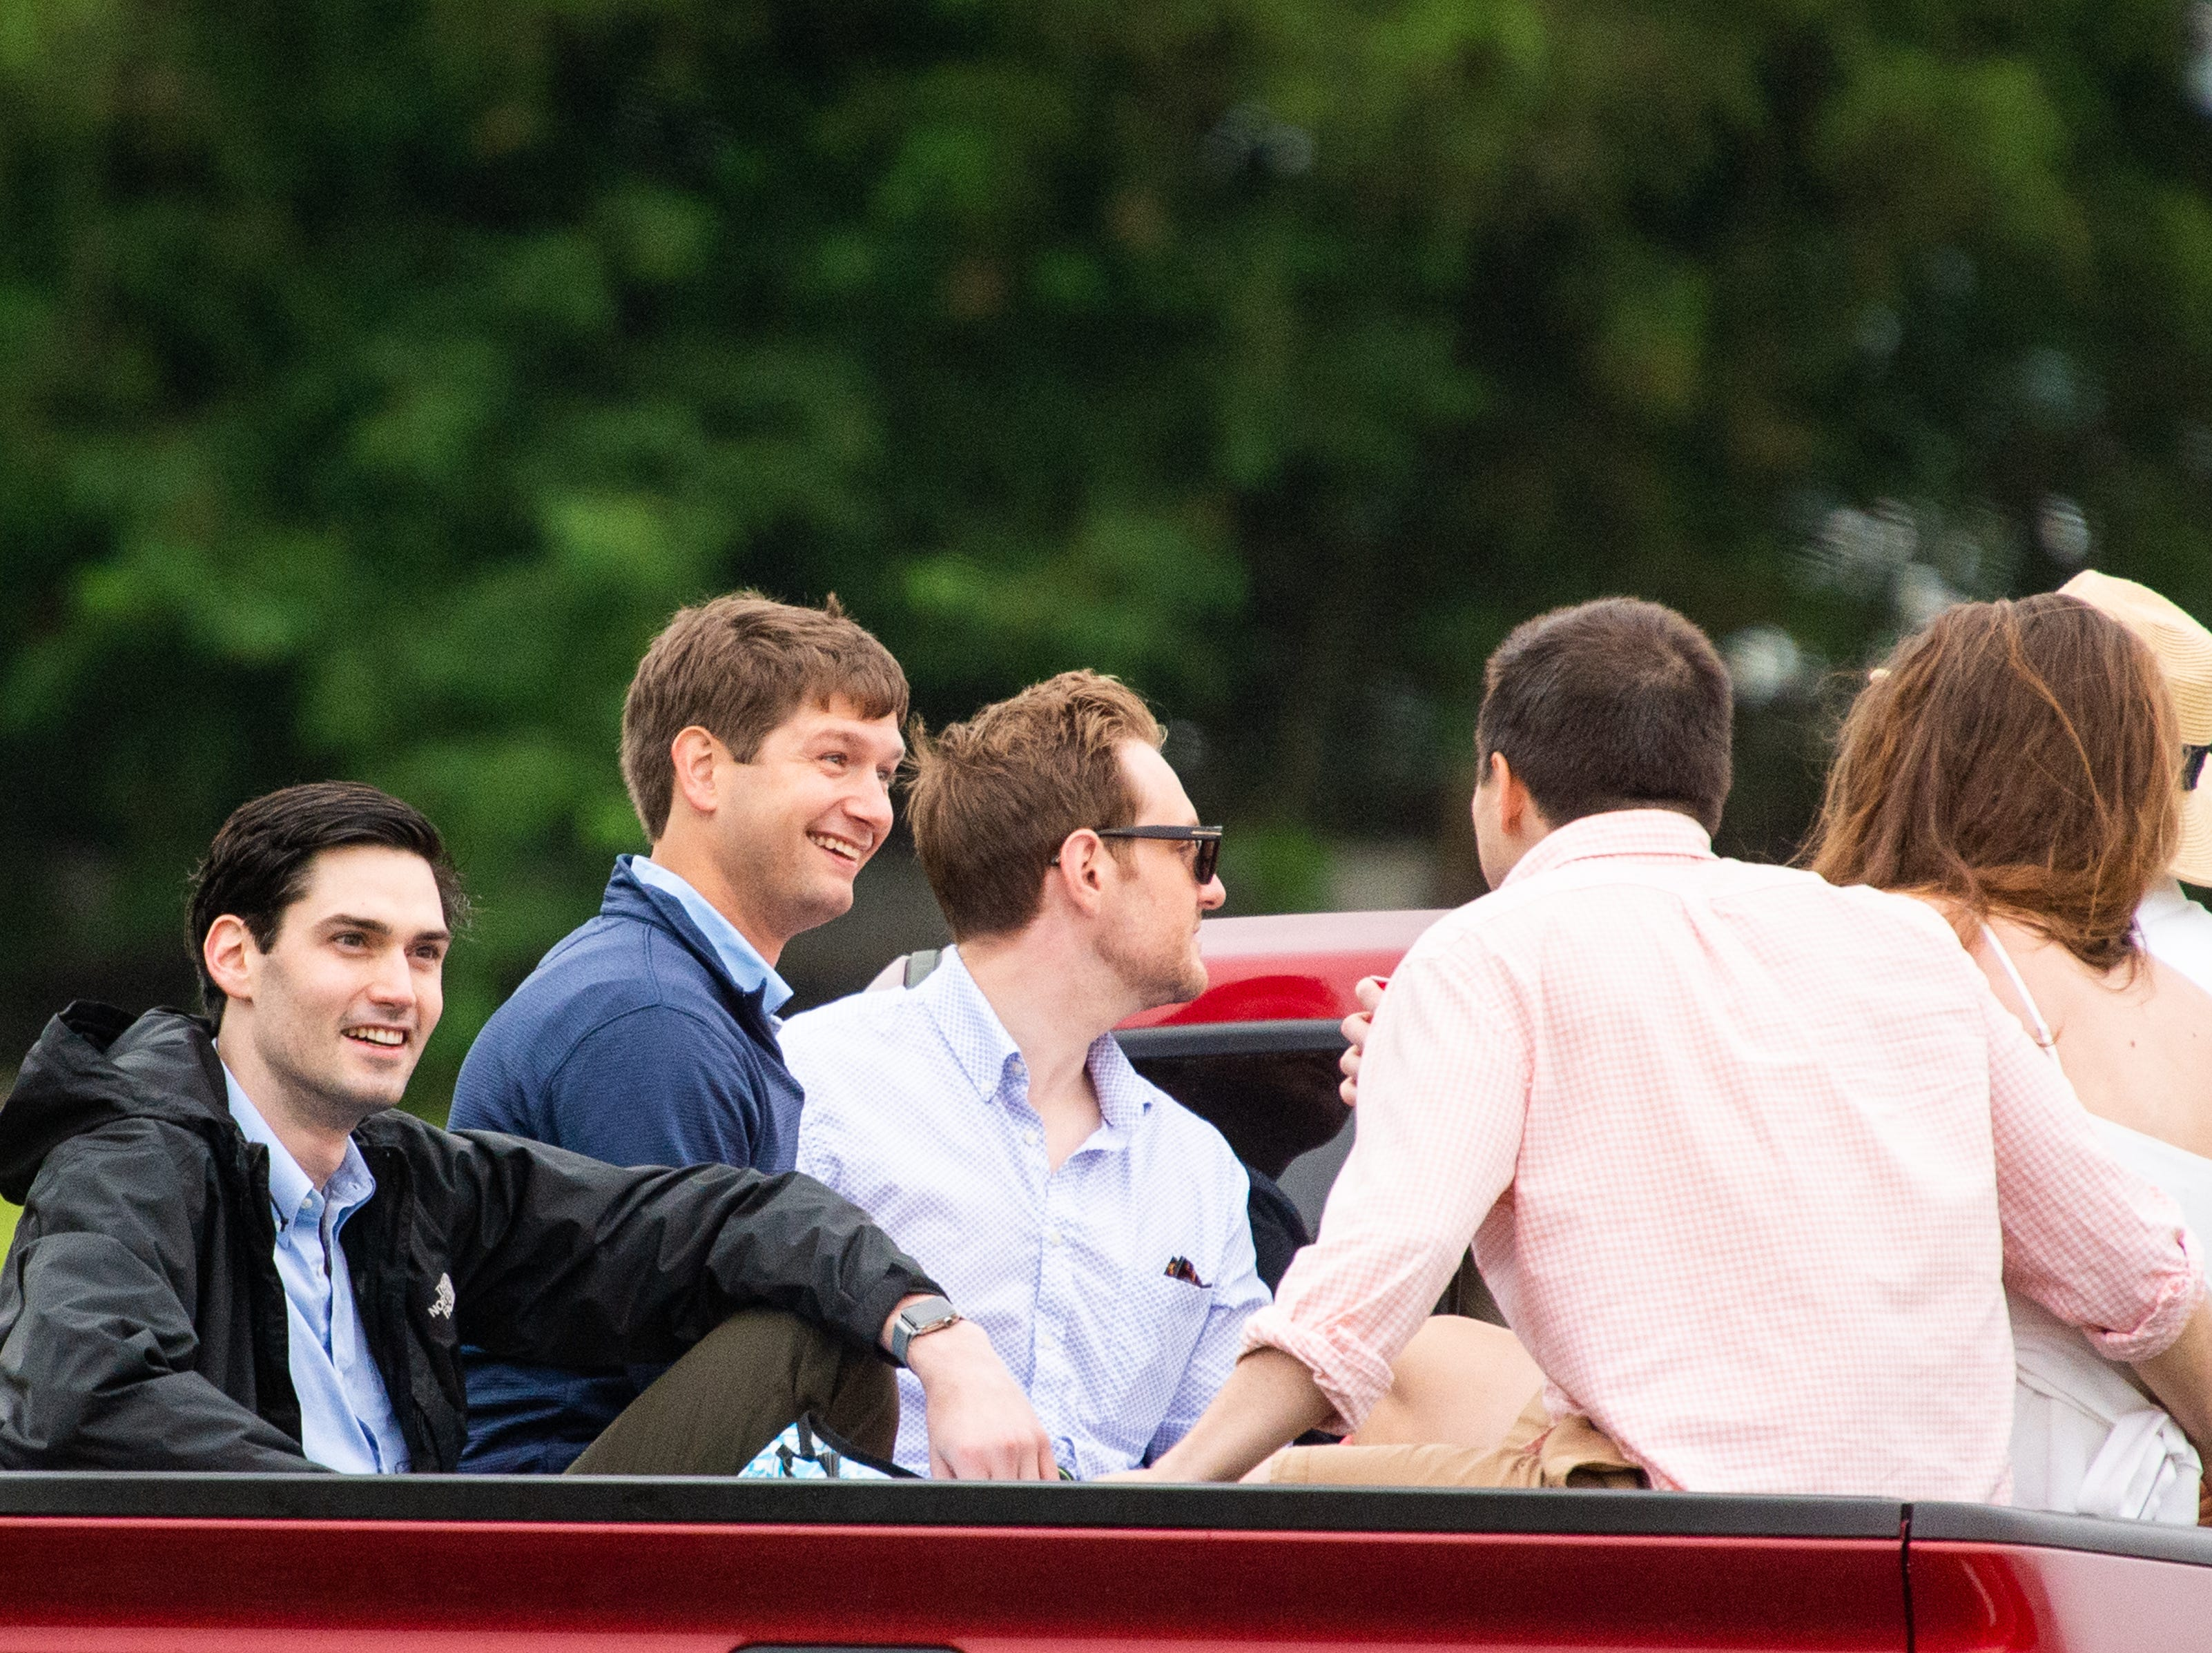 People arrive in the back of a pickup truck during the Iroquois Steeplechase at Percy Warner Park Saturday, May 11, 2019, in Nashville, Tenn.